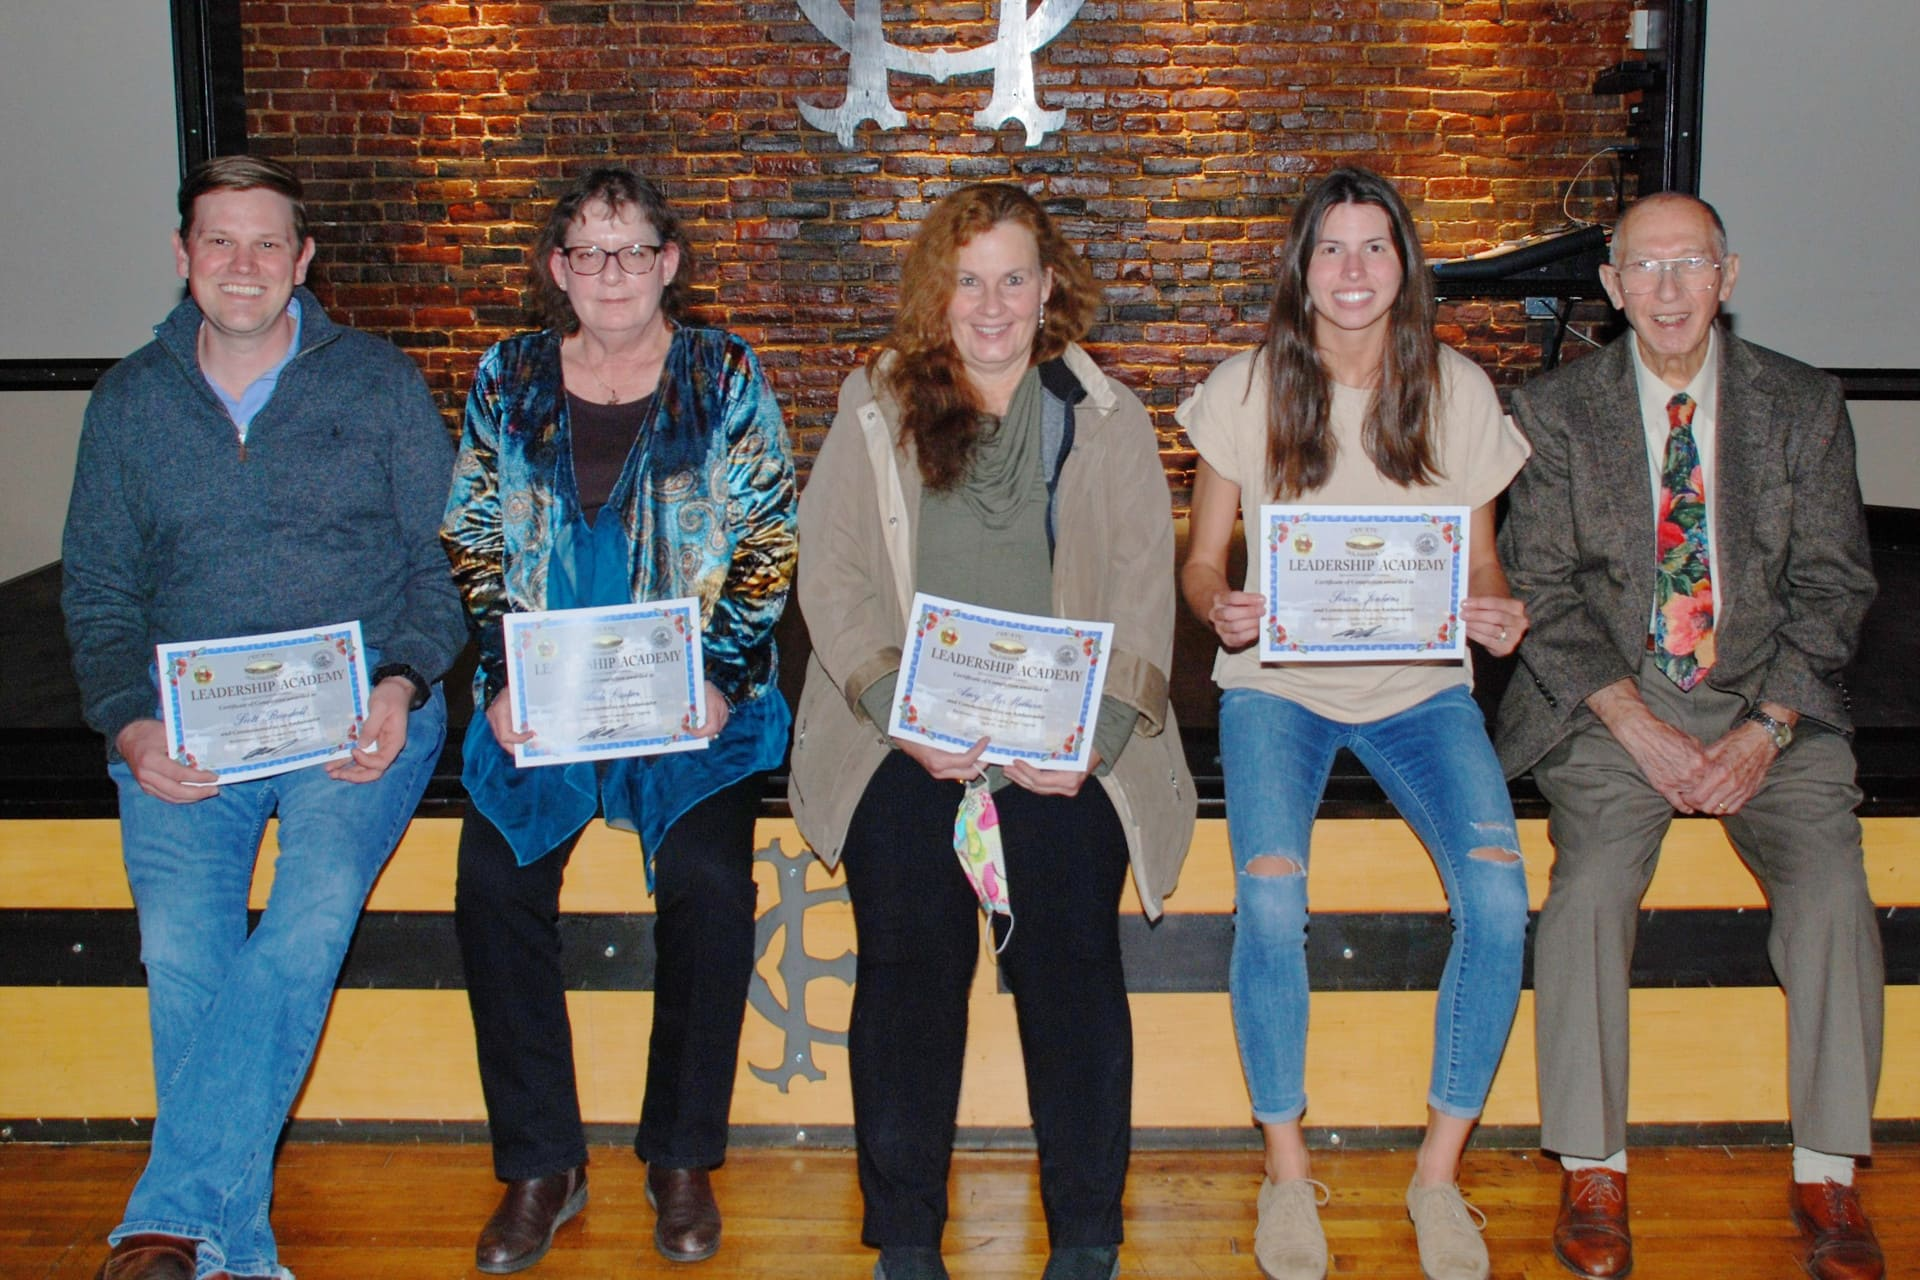 Graduates of the Leadership Academy 2021 include Scott Randall, Andi Cartier, Amy McMillan and Soran Jenkins. Not pictured are Carter Curry and Buck Edwards. The sessions, held virtually over 10 weeks, helped Upshur County residents learn more about city and county government and encouraged folks to attend the meetings and lend their voices on issues. The program was sponsored by Create Buckhannon and organized by Dr. Joseph Reed.